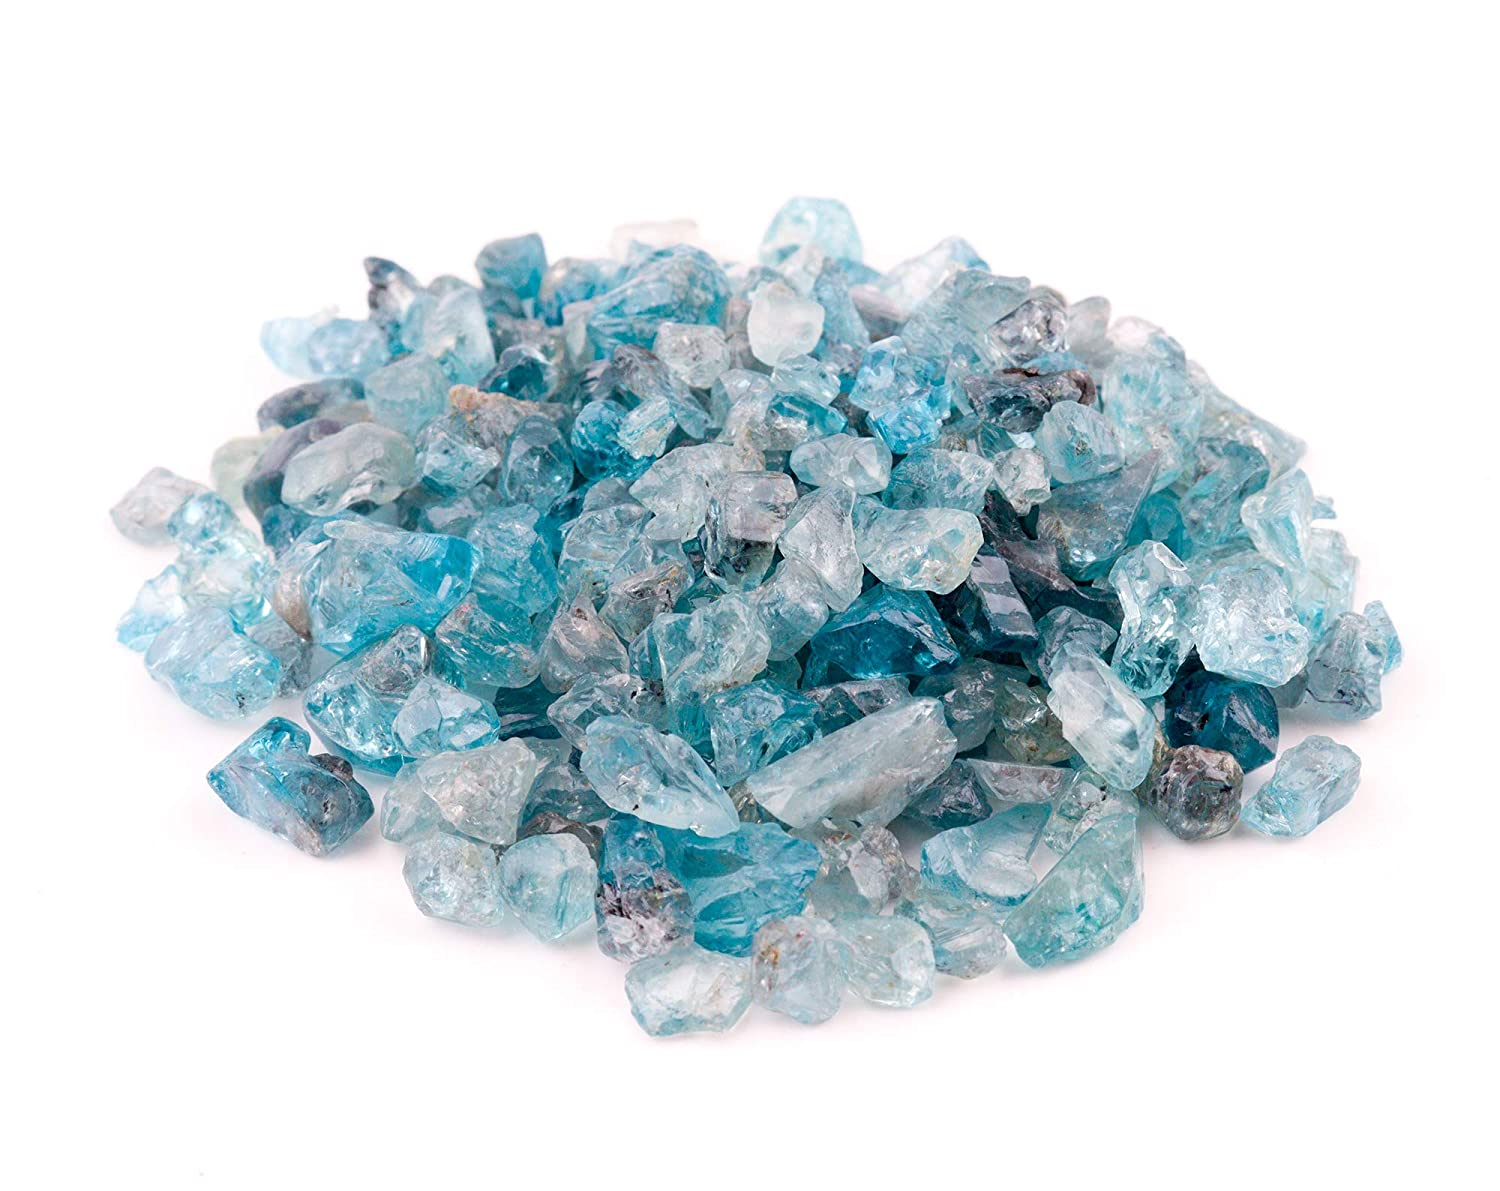 AA+ Grade Raleigh Mall 50 carats Raw Blue Jewelry Crystals Making Classic Zircon Sup